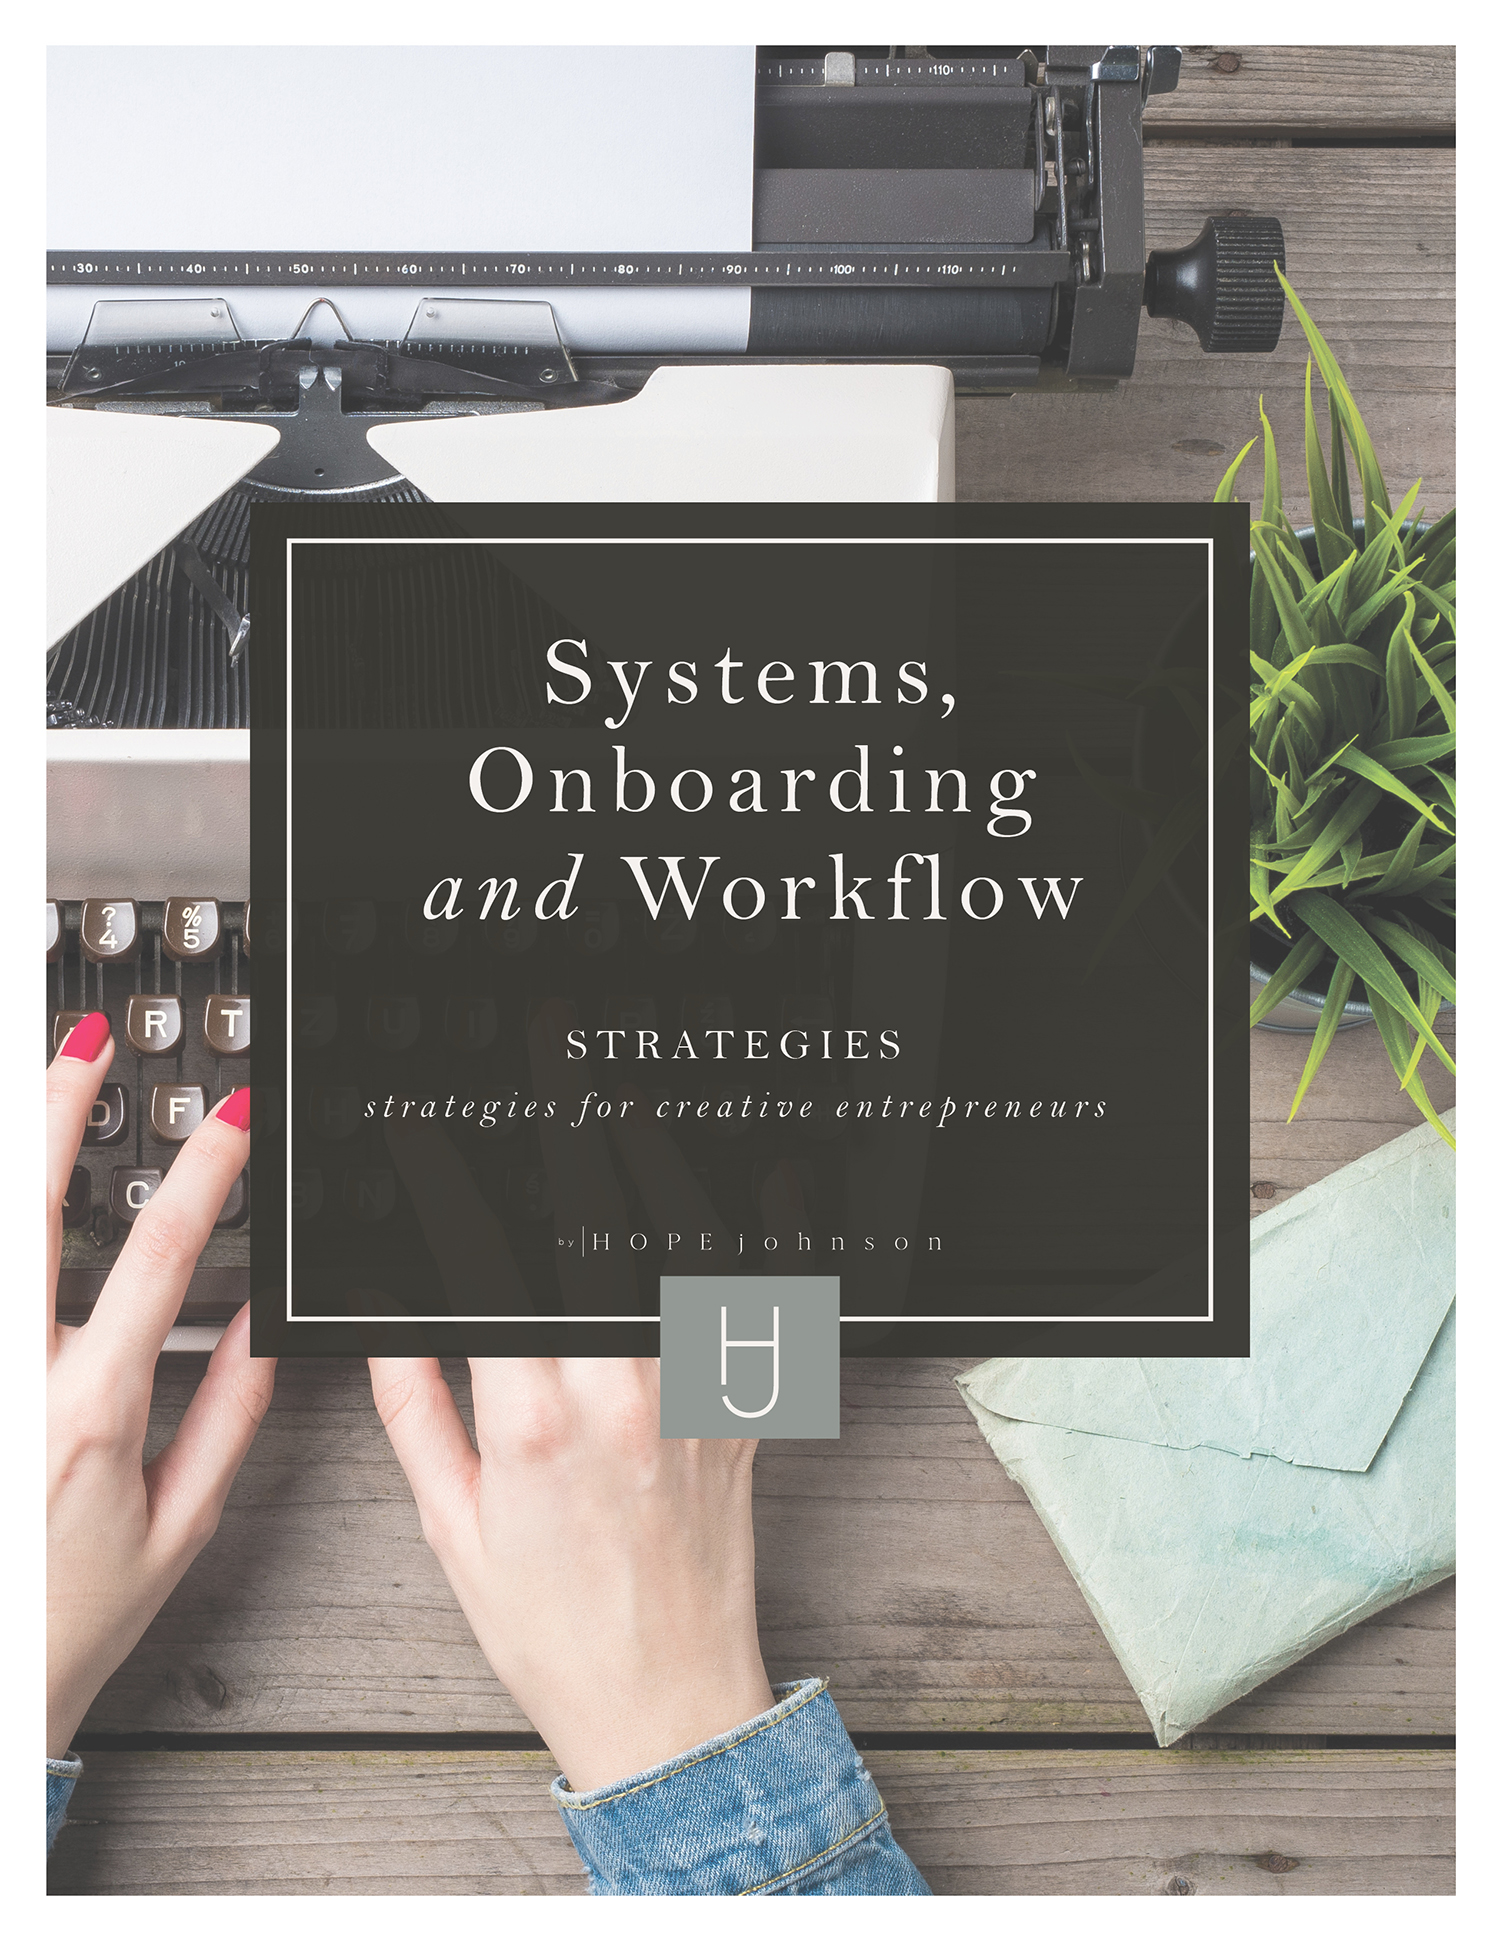 Systems, Onboarding, and Client Experience_course download cover.jpg